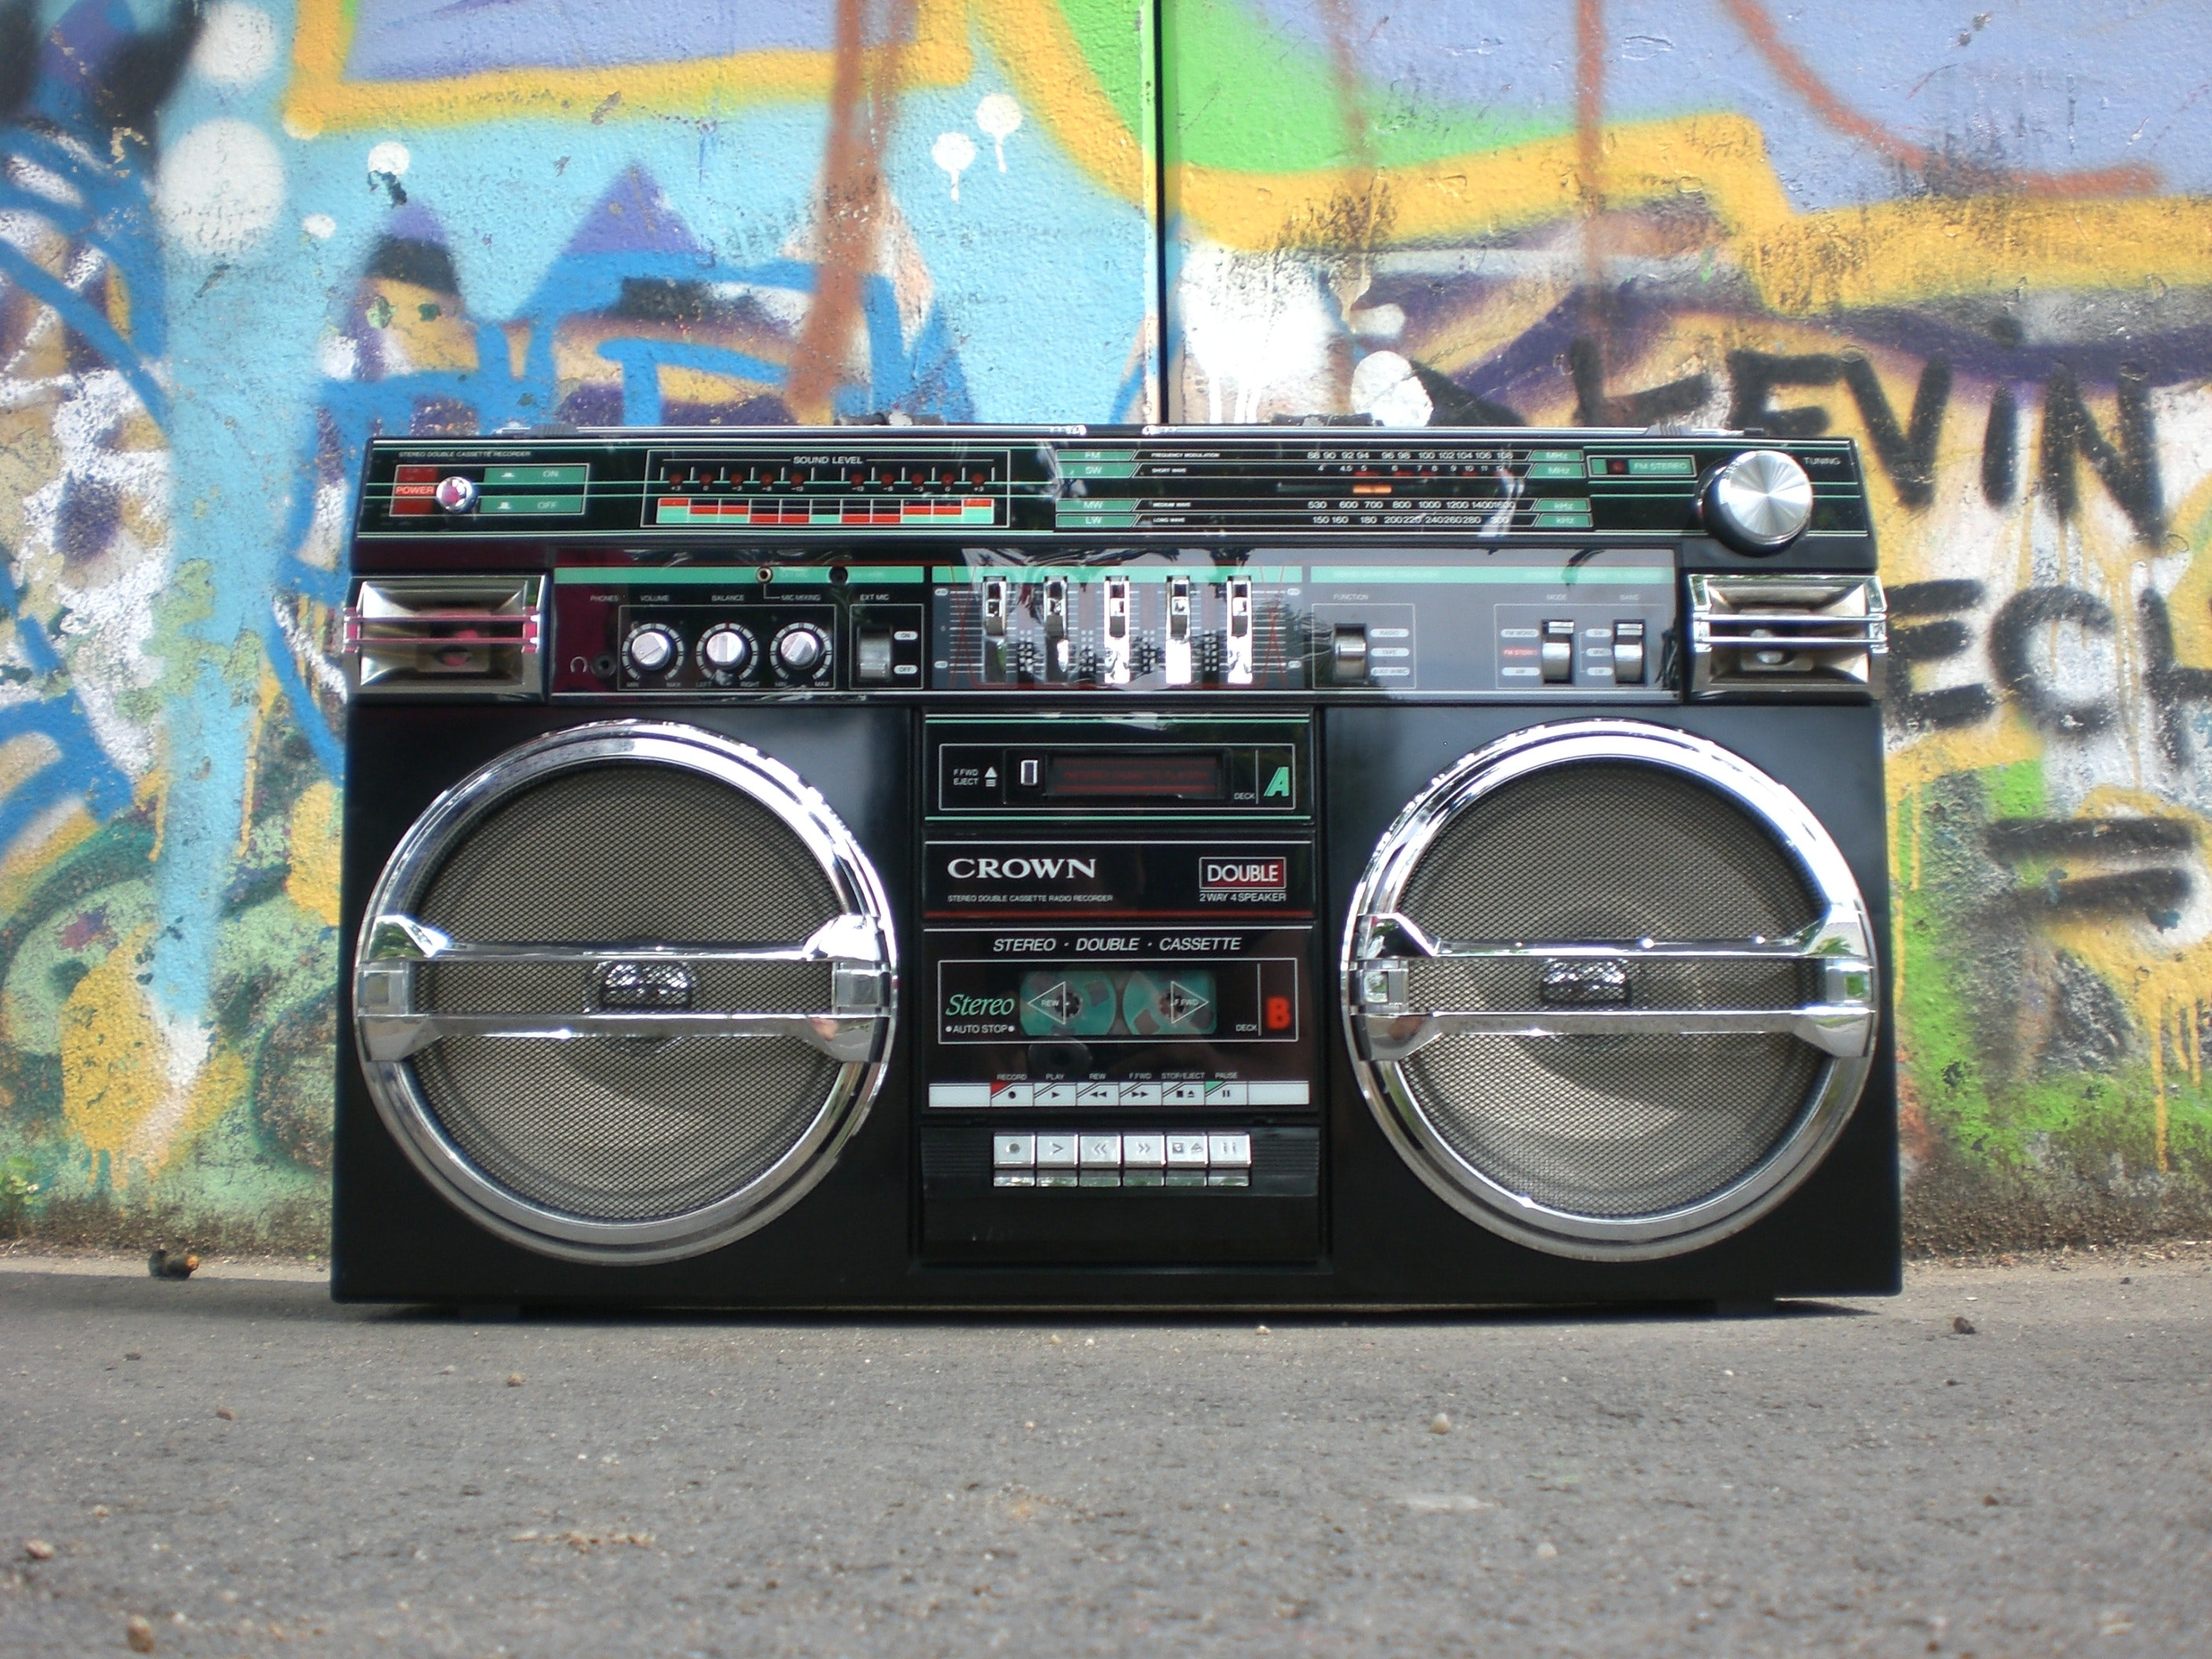 analogue-antique-boombox-159613